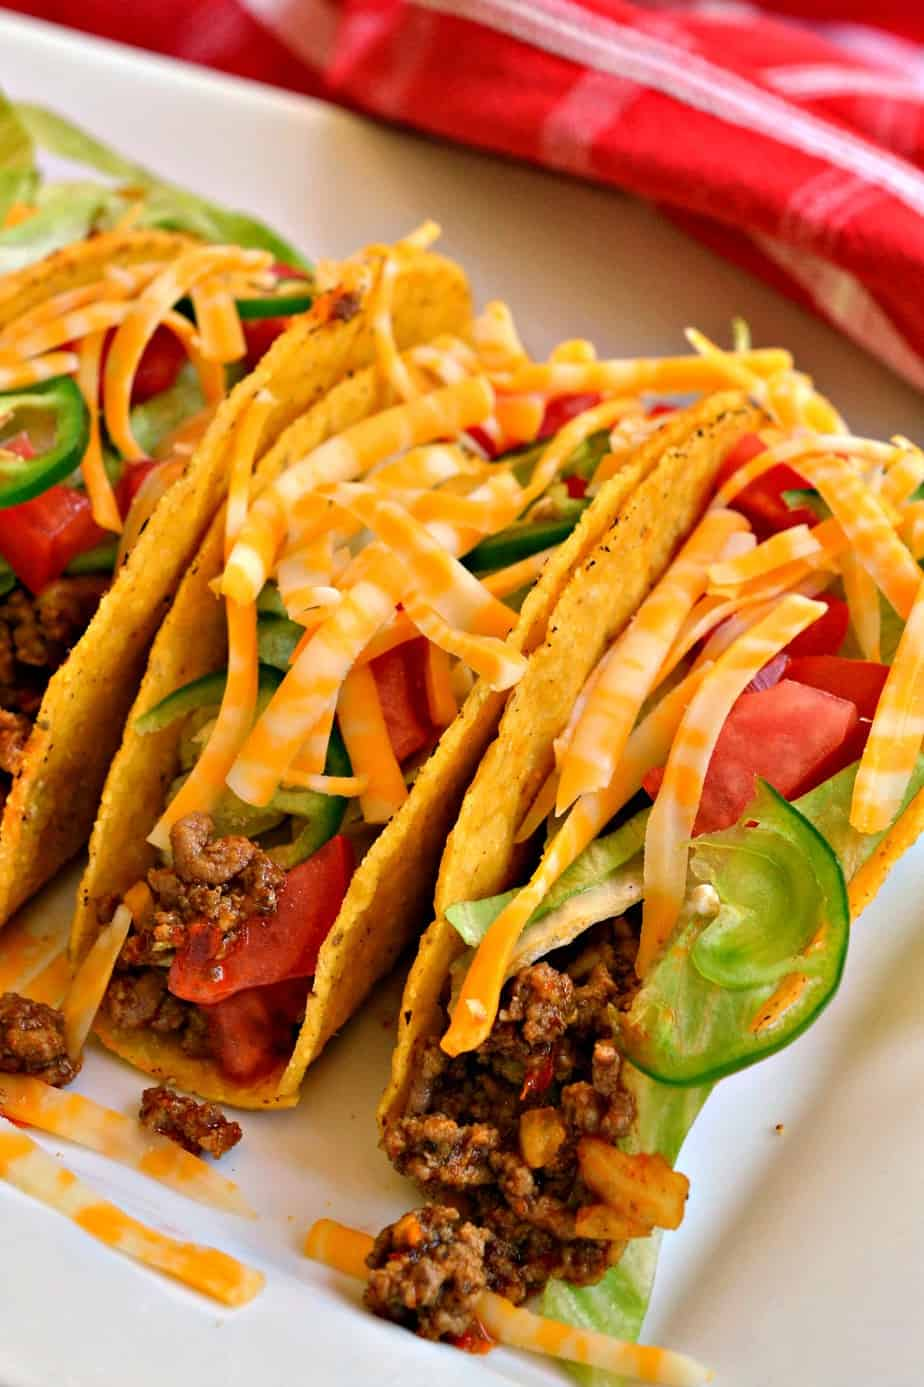 Top these Ground Beef Tacos with your choice of fixings and taco Tuesday has never been easier.